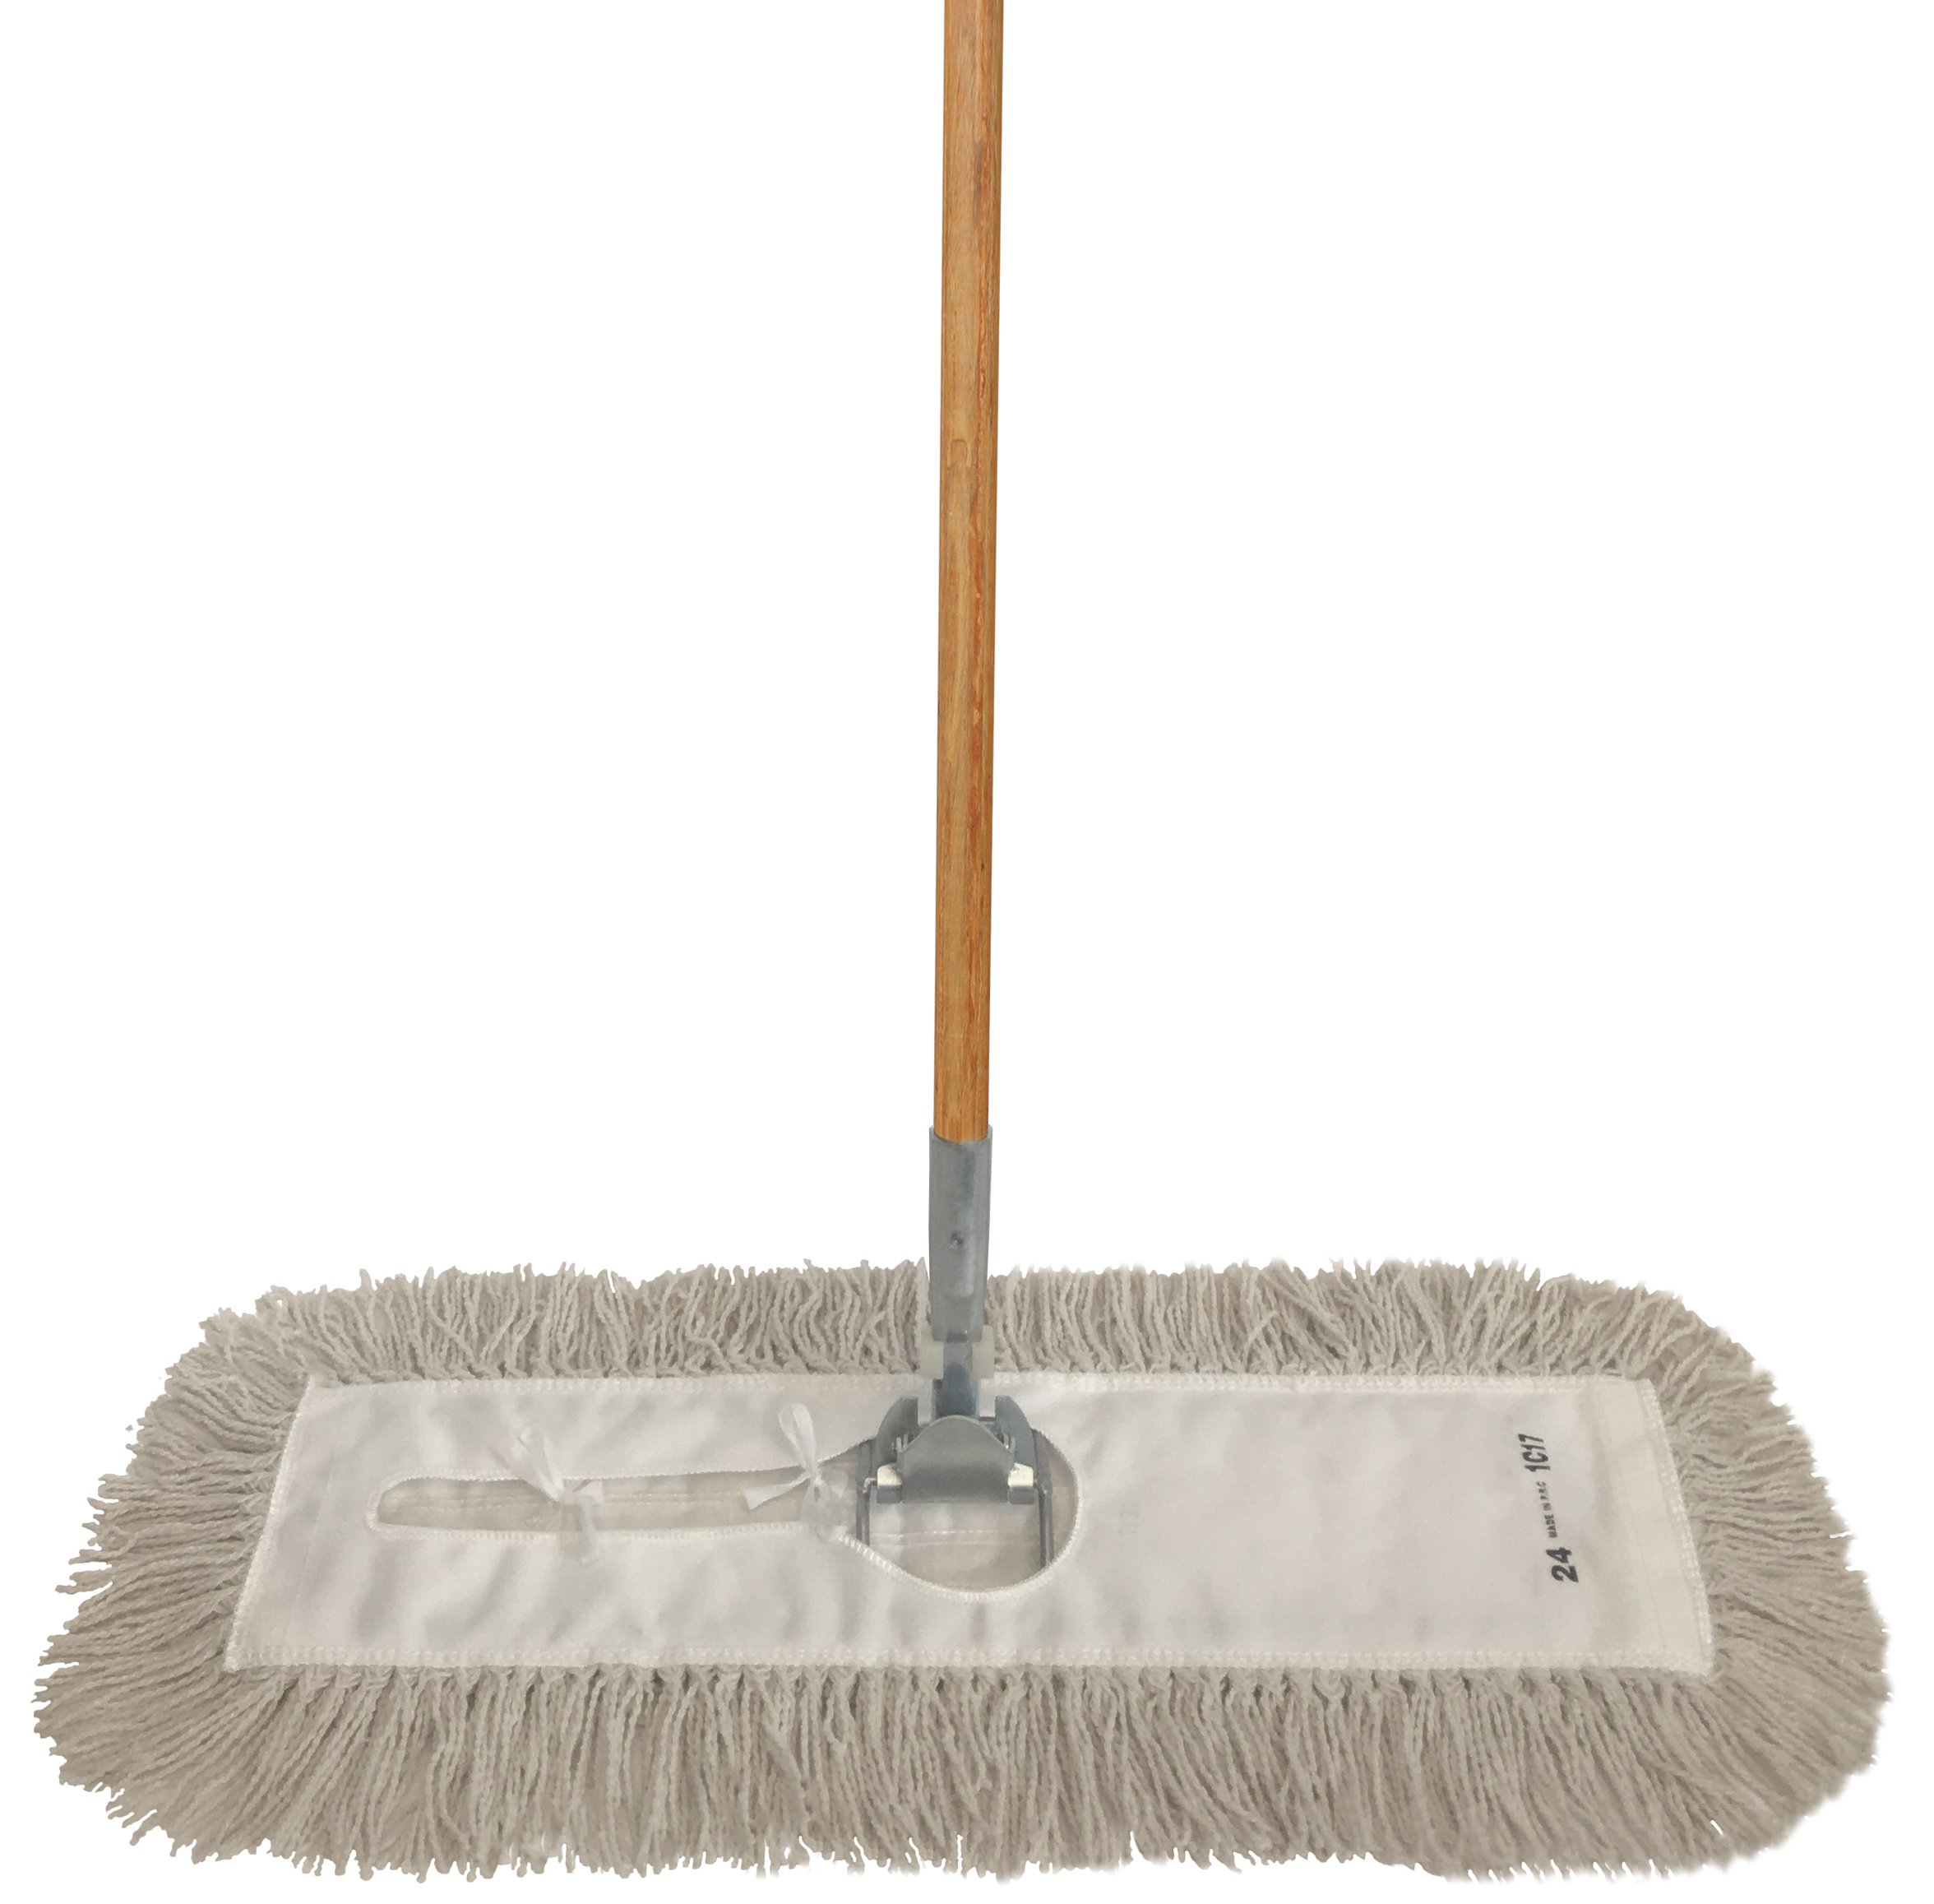 Dust Mop Kit 36'' : (1) 36'' White Industrial Closed-Loop Dust Mop, (1) 36'' Wire Dust Mop Frame & (1) Wood Dust Mop Handle Clip-On Style